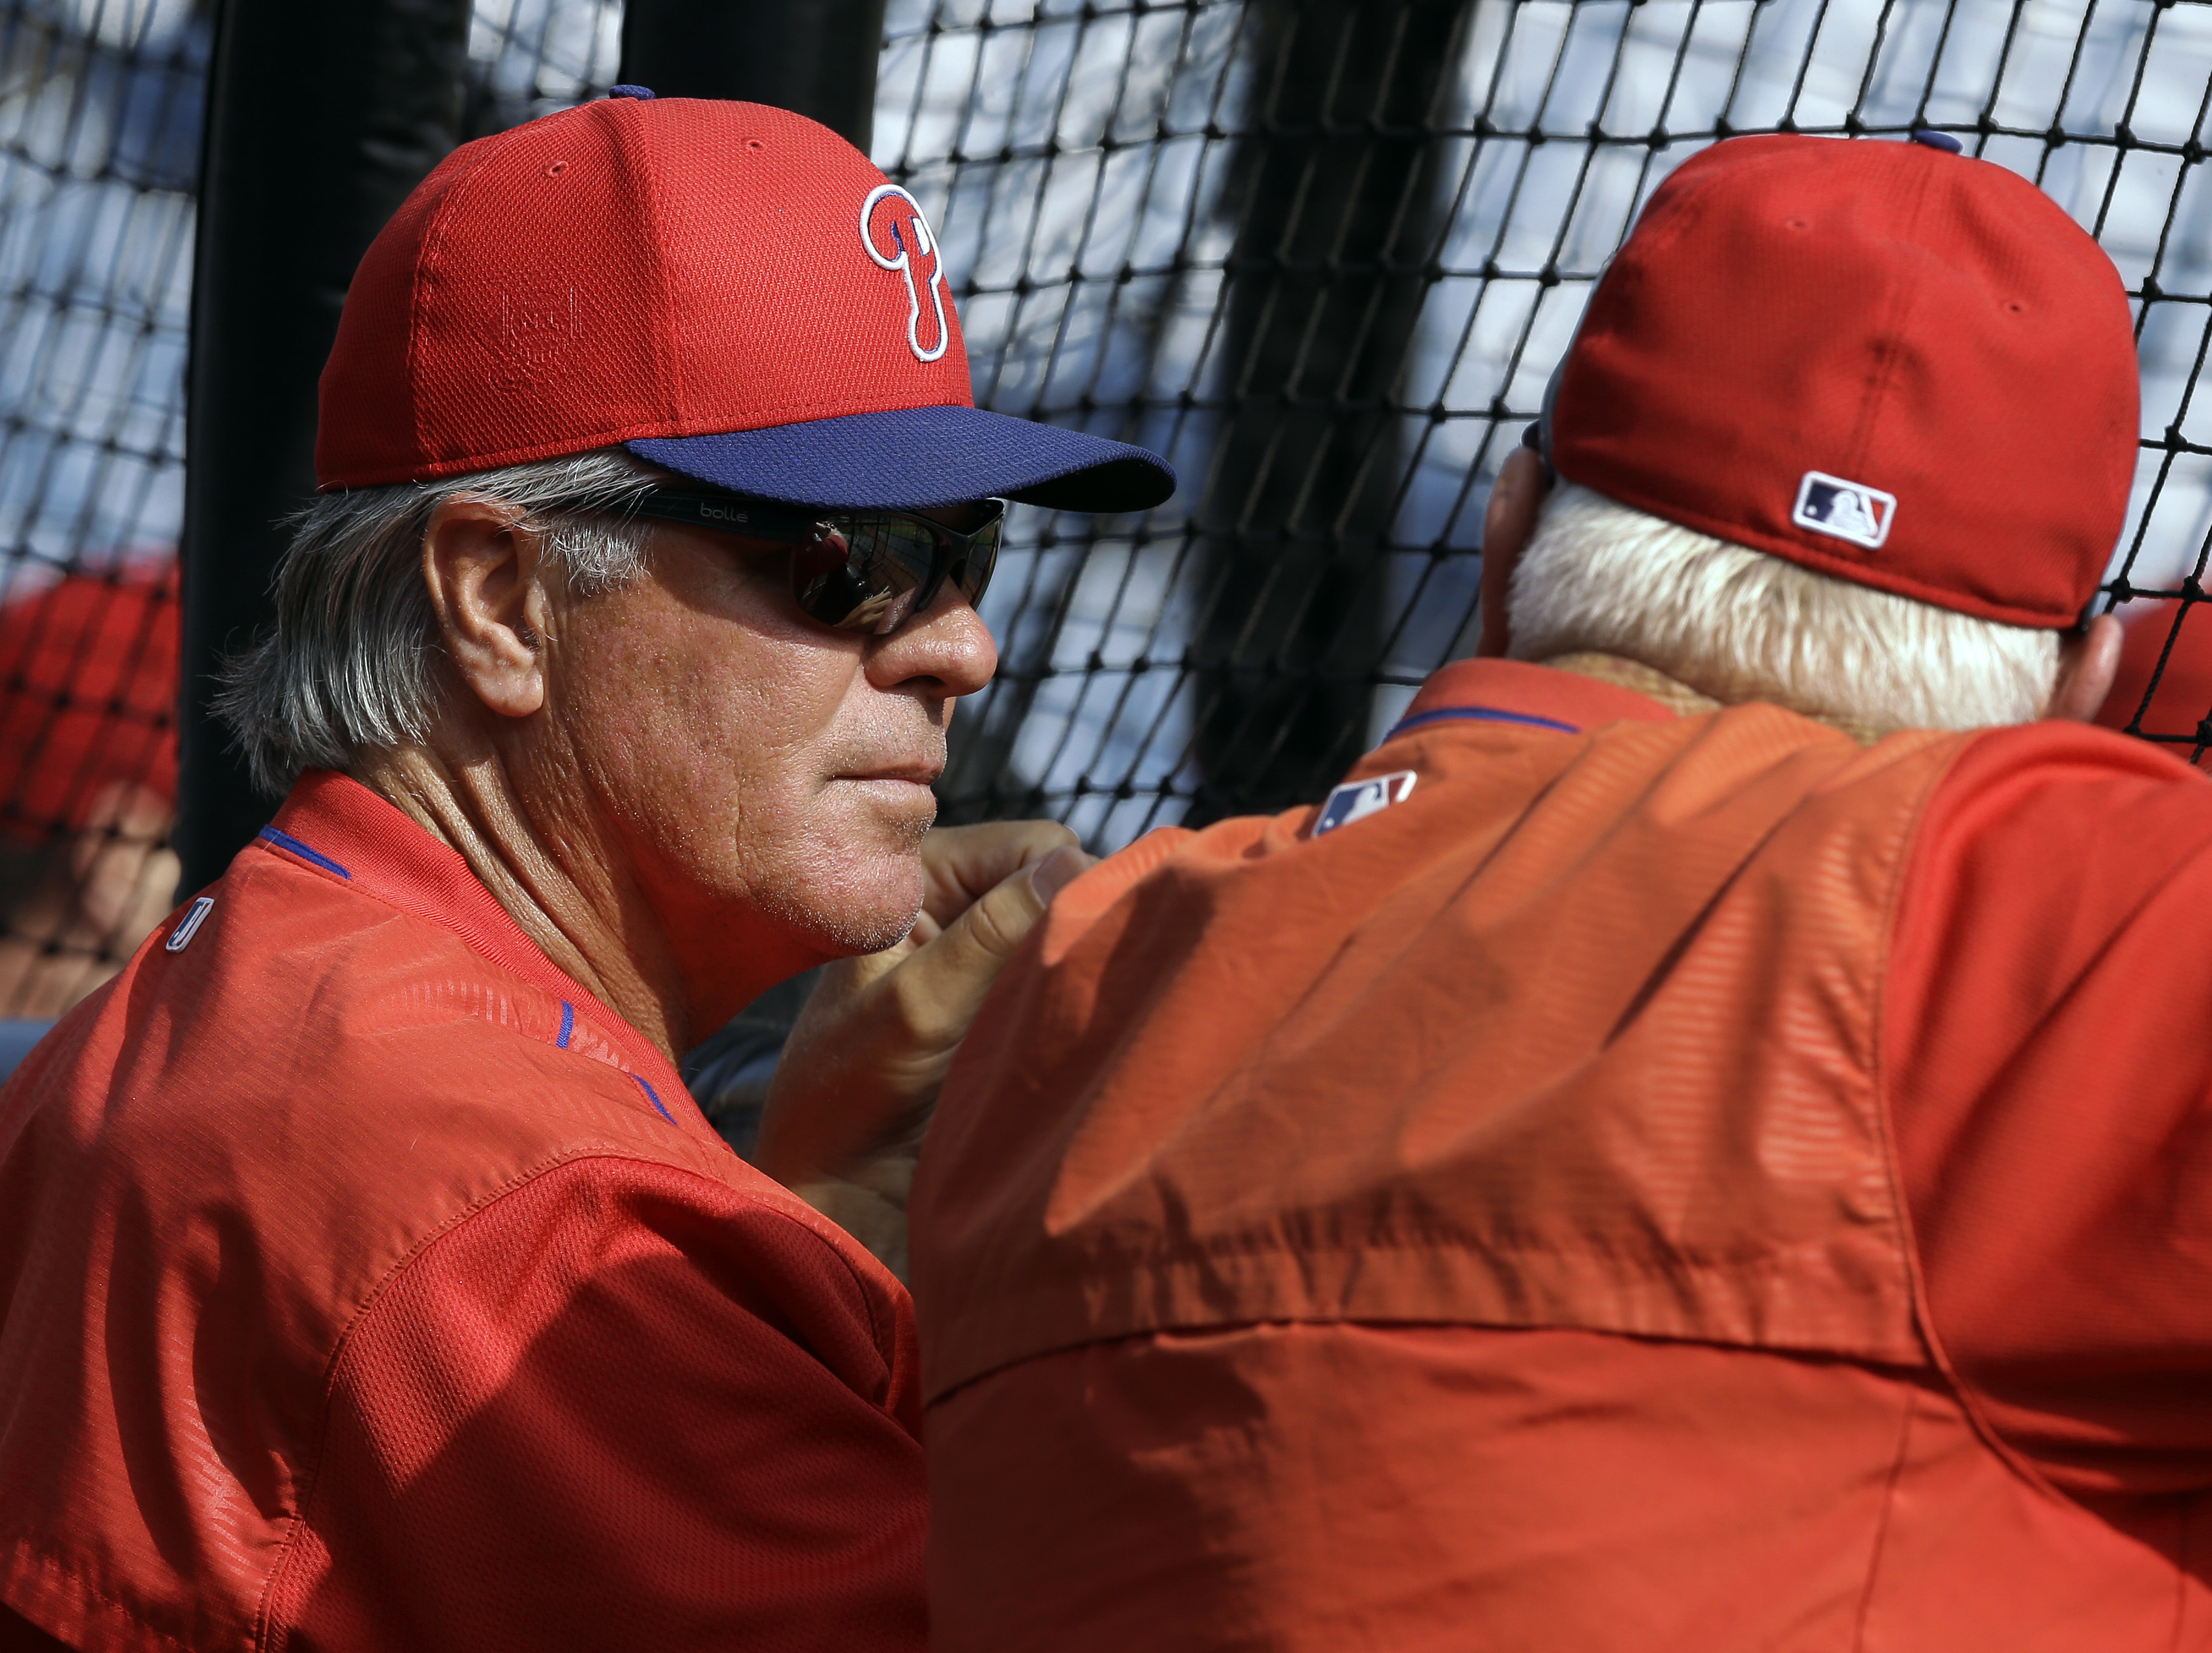 Philadelphia Phillies manager Pete Mackanin, left, talks with former manager Charlie Manuel before a spring training baseball game against the Tampa Bay Rays, Thursday, March 17, 2016, in Clearwater, Fla. (AP Photo/Chris O'Meara)